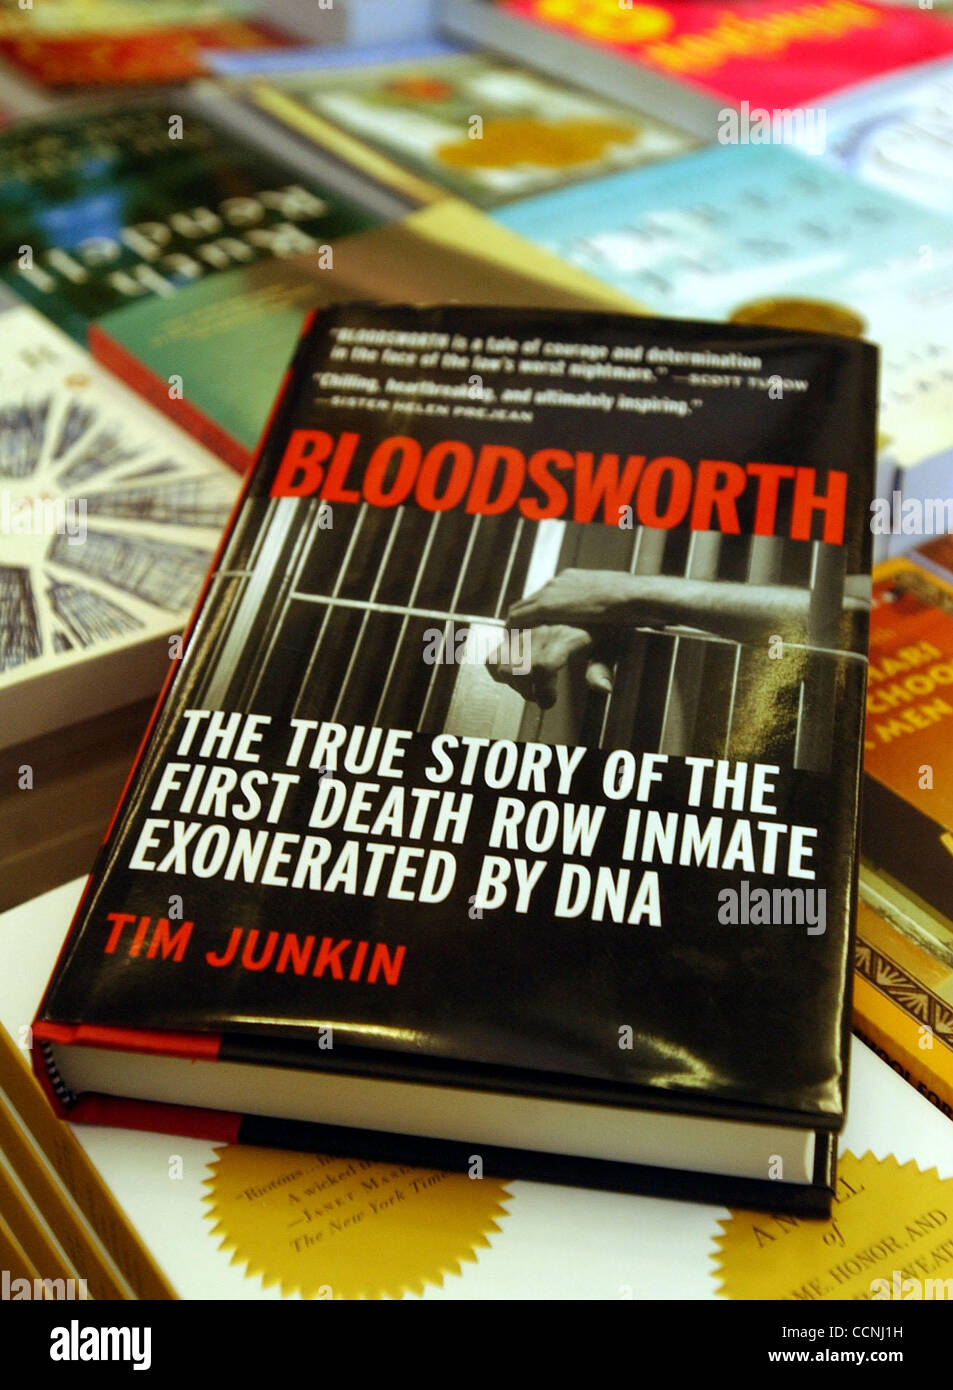 Author Tim Junkin's book, Bloodsworth, is about the first Death Row